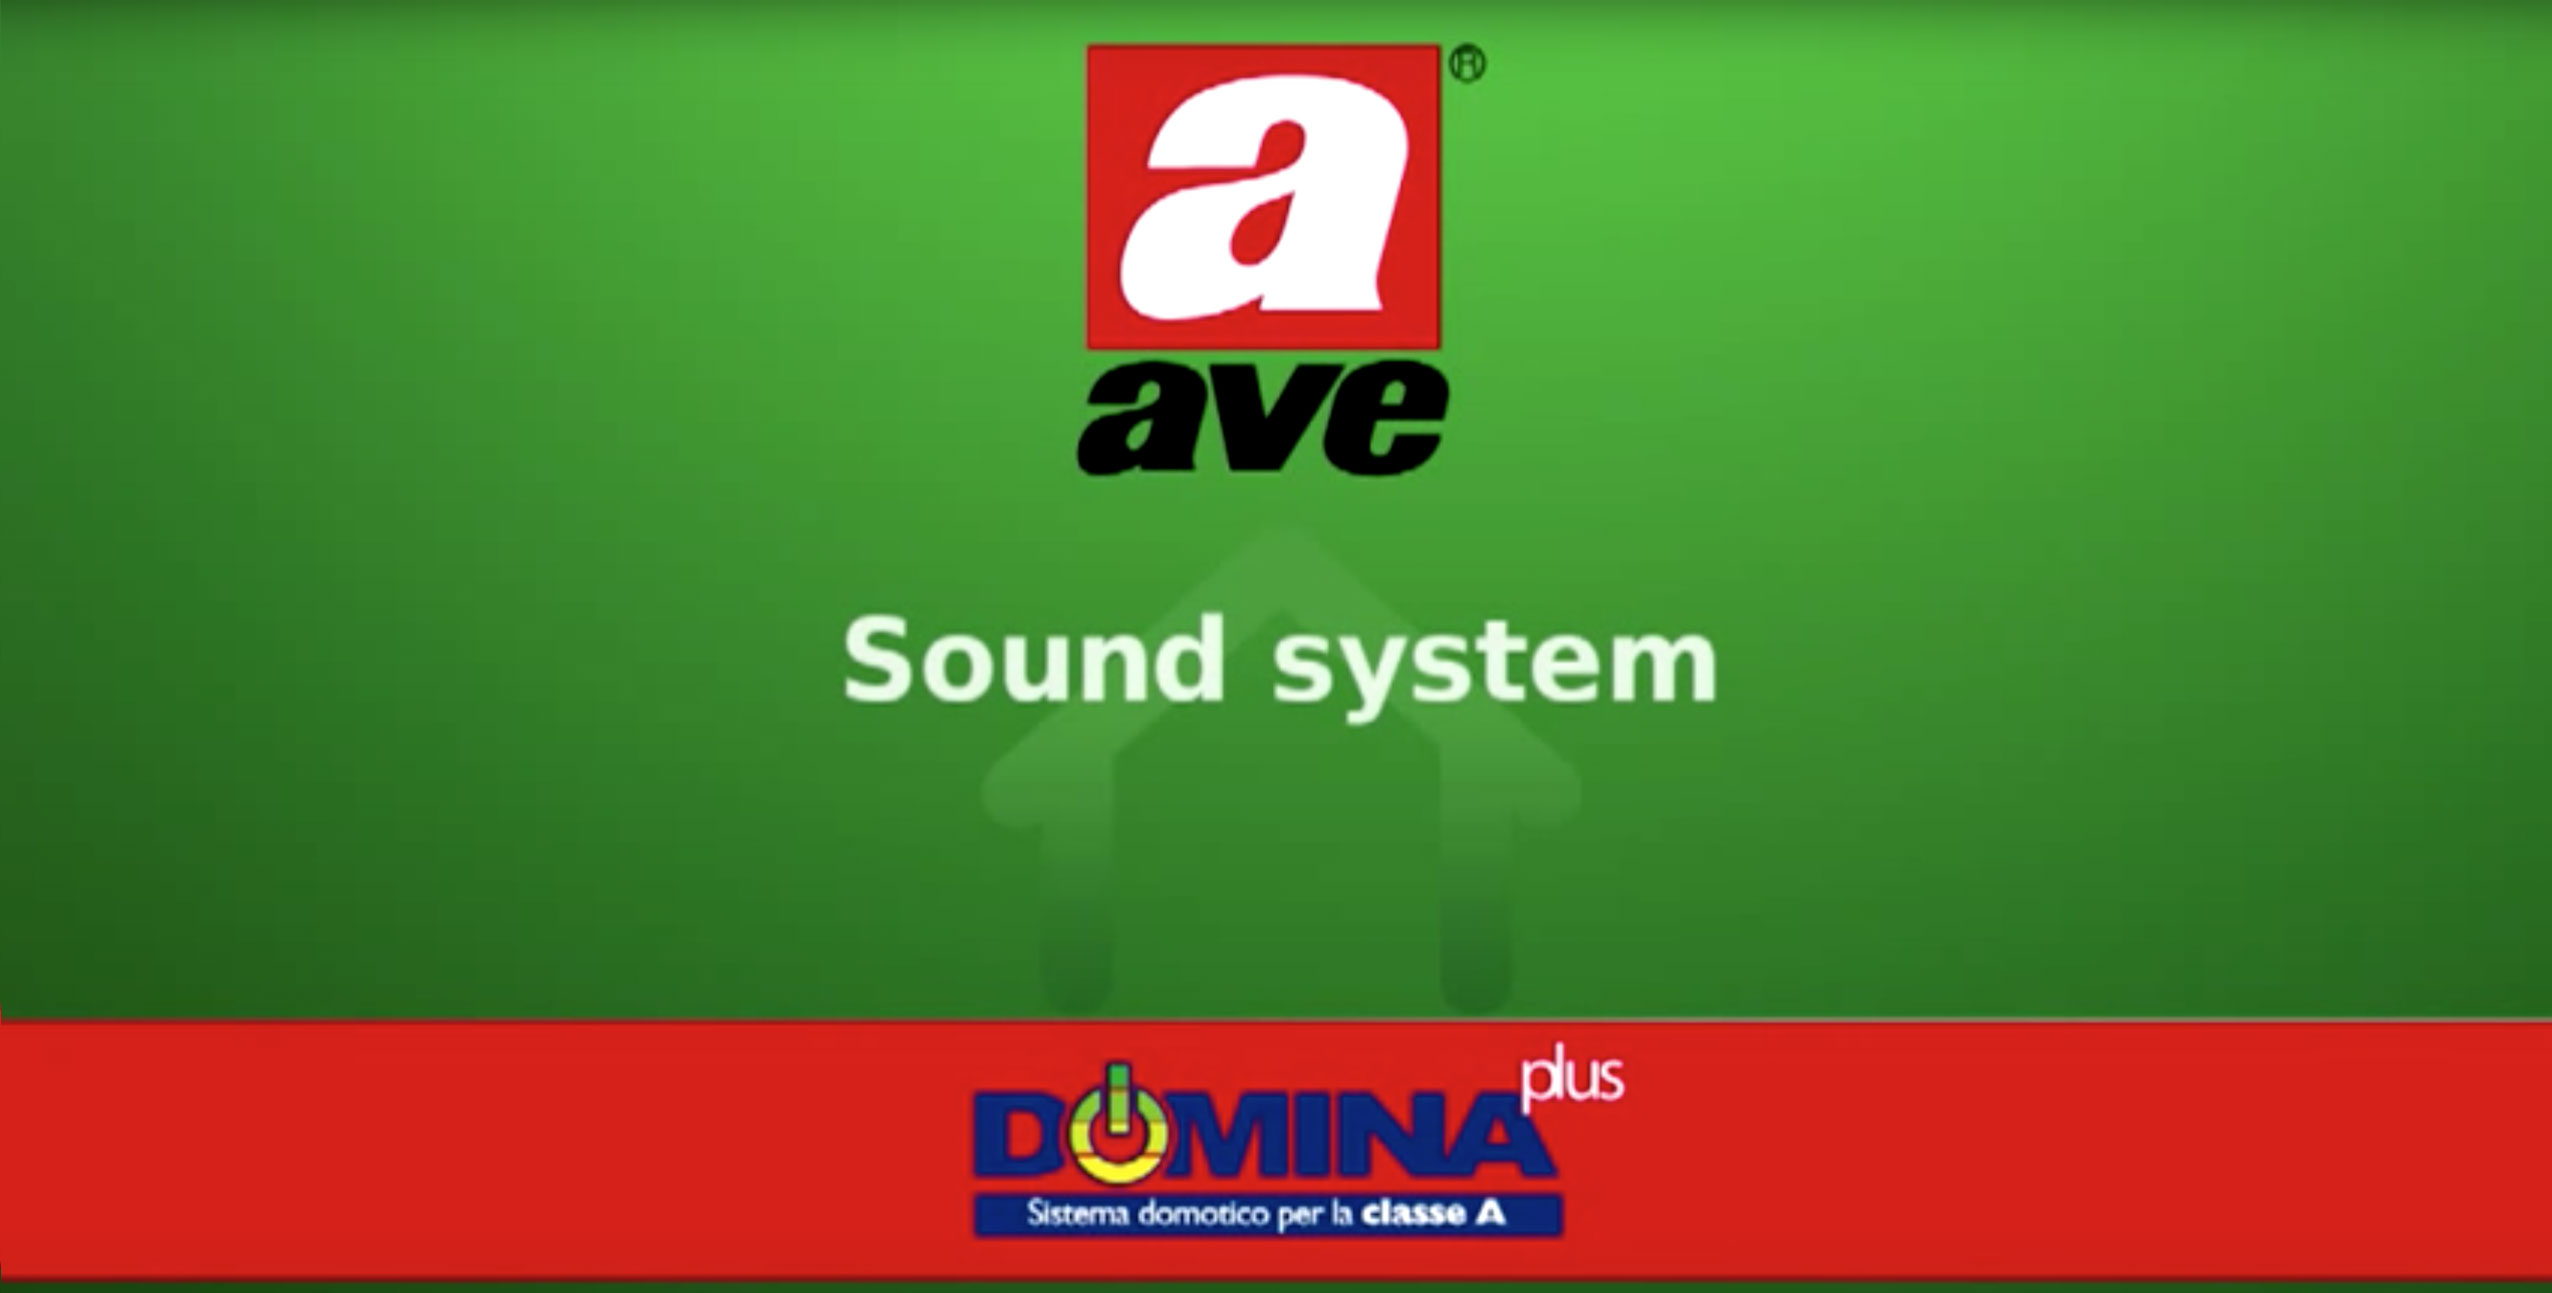 Home automation AVE DOMINA plus – Sound System video